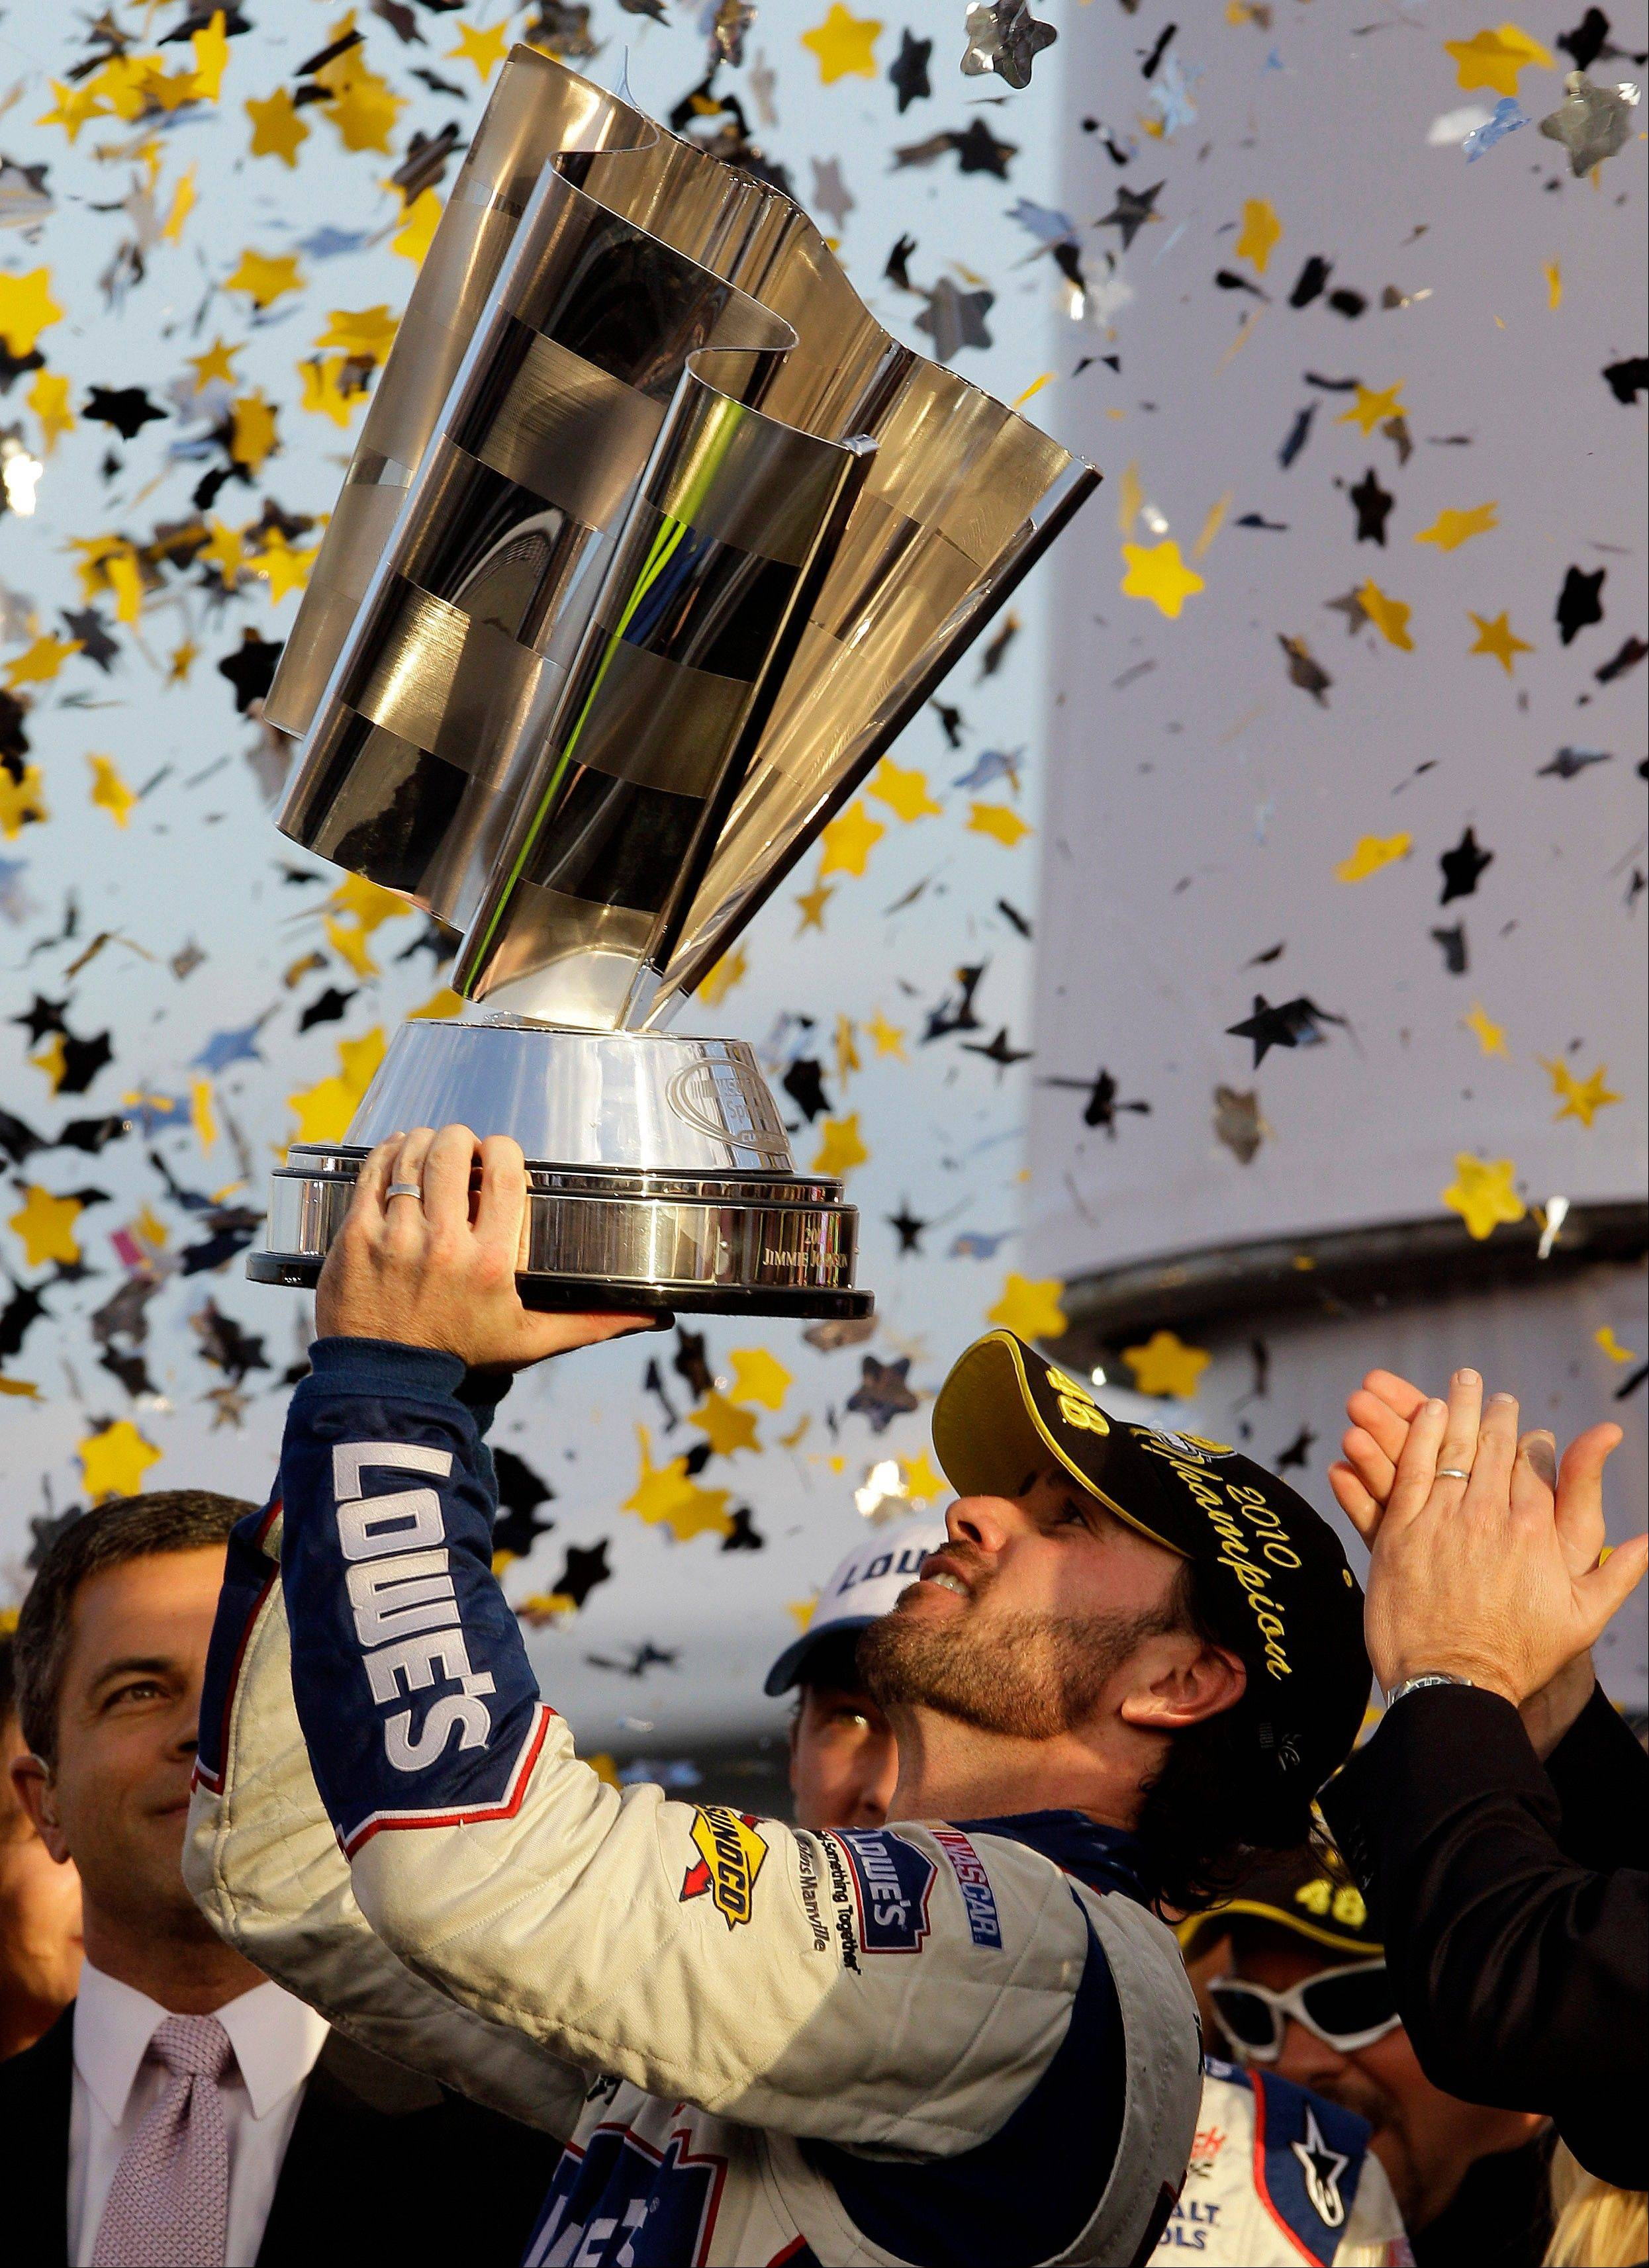 After five Sprint Cup titles in a row, Jimmy Johnson is again poised to make a bid for the NASCAR championship. (